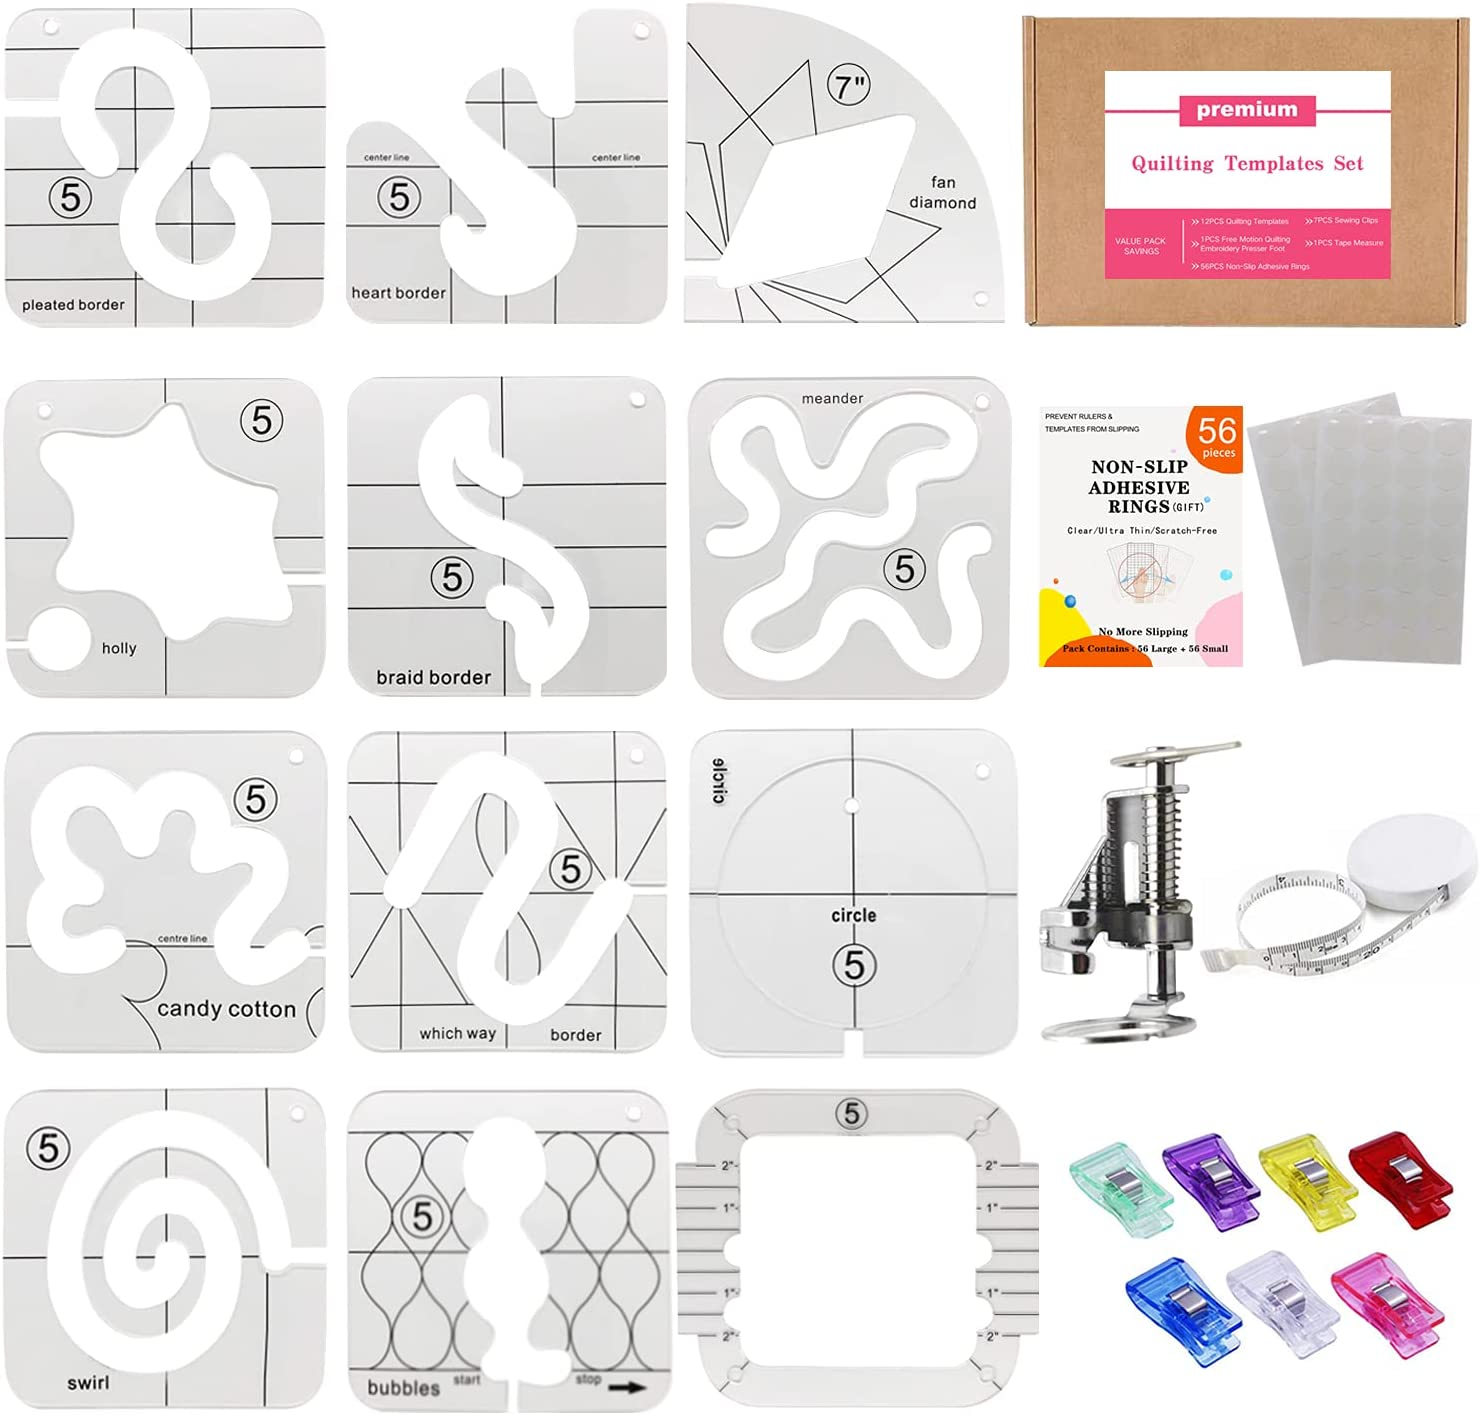 Quilting Templates Set for Domestic 11P Includes Sewing Machine San Free Shipping New Antonio Mall